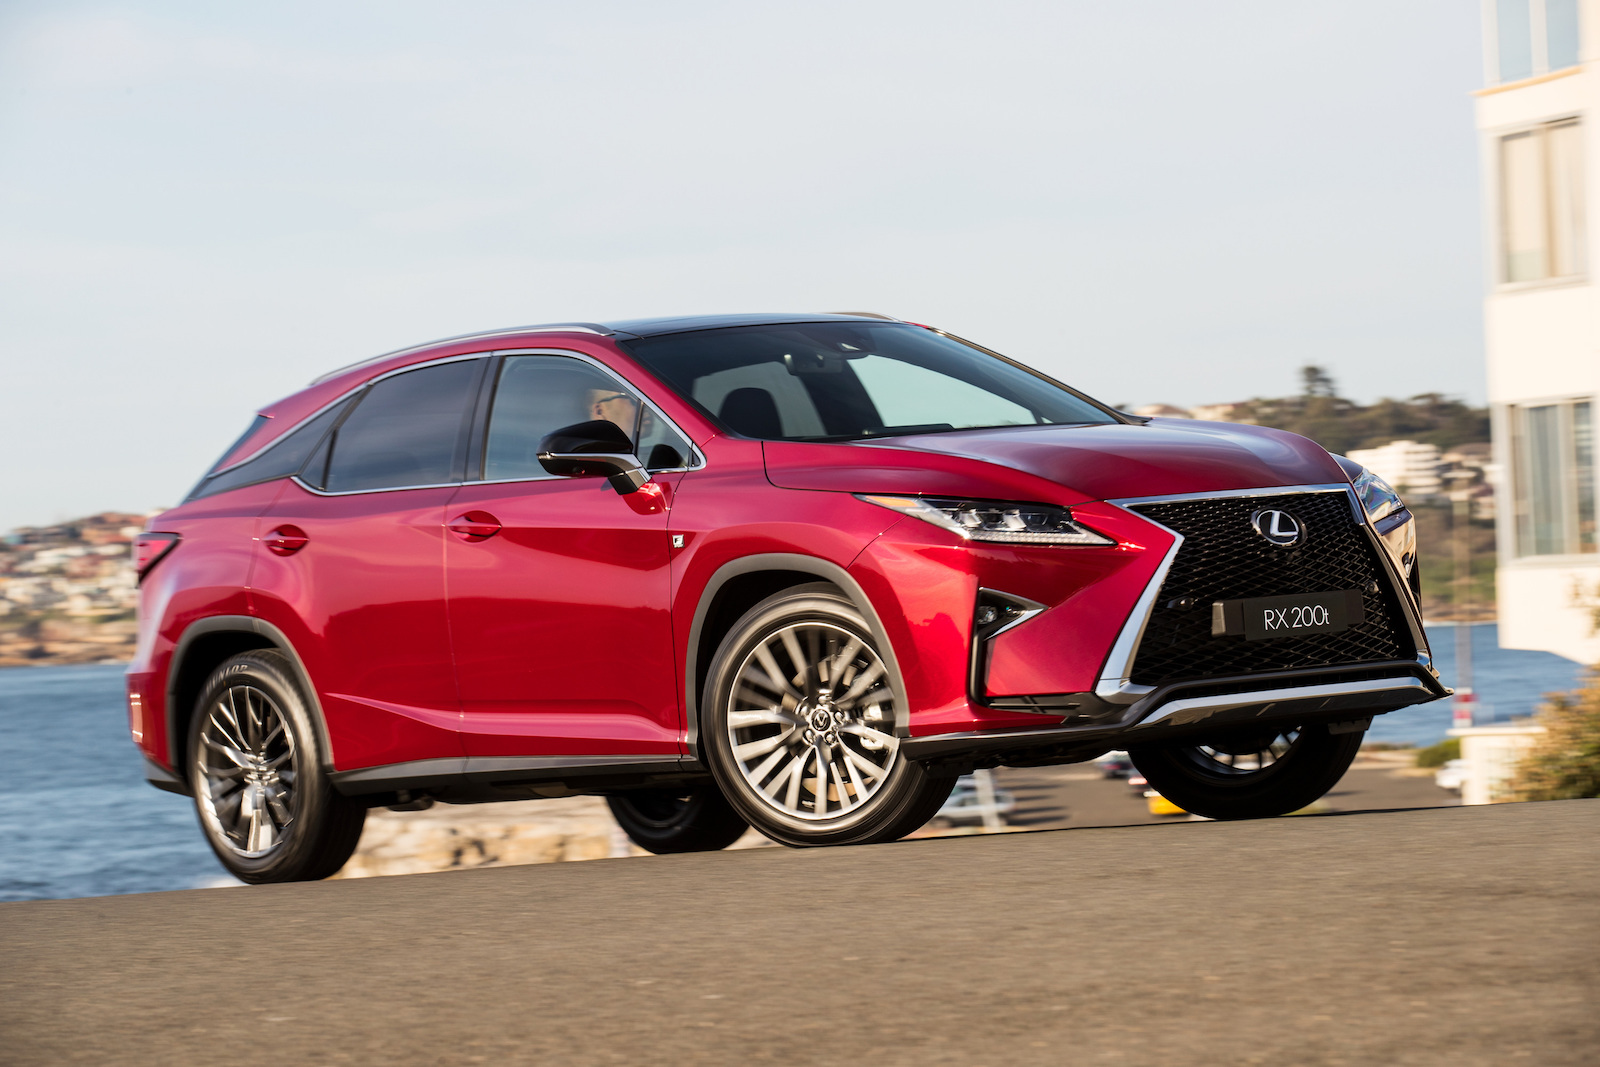 2017 Toyota Suv Lineup >> Lexus RX 200t now available in F Sport & Sports Luxury form | PerformanceDrive